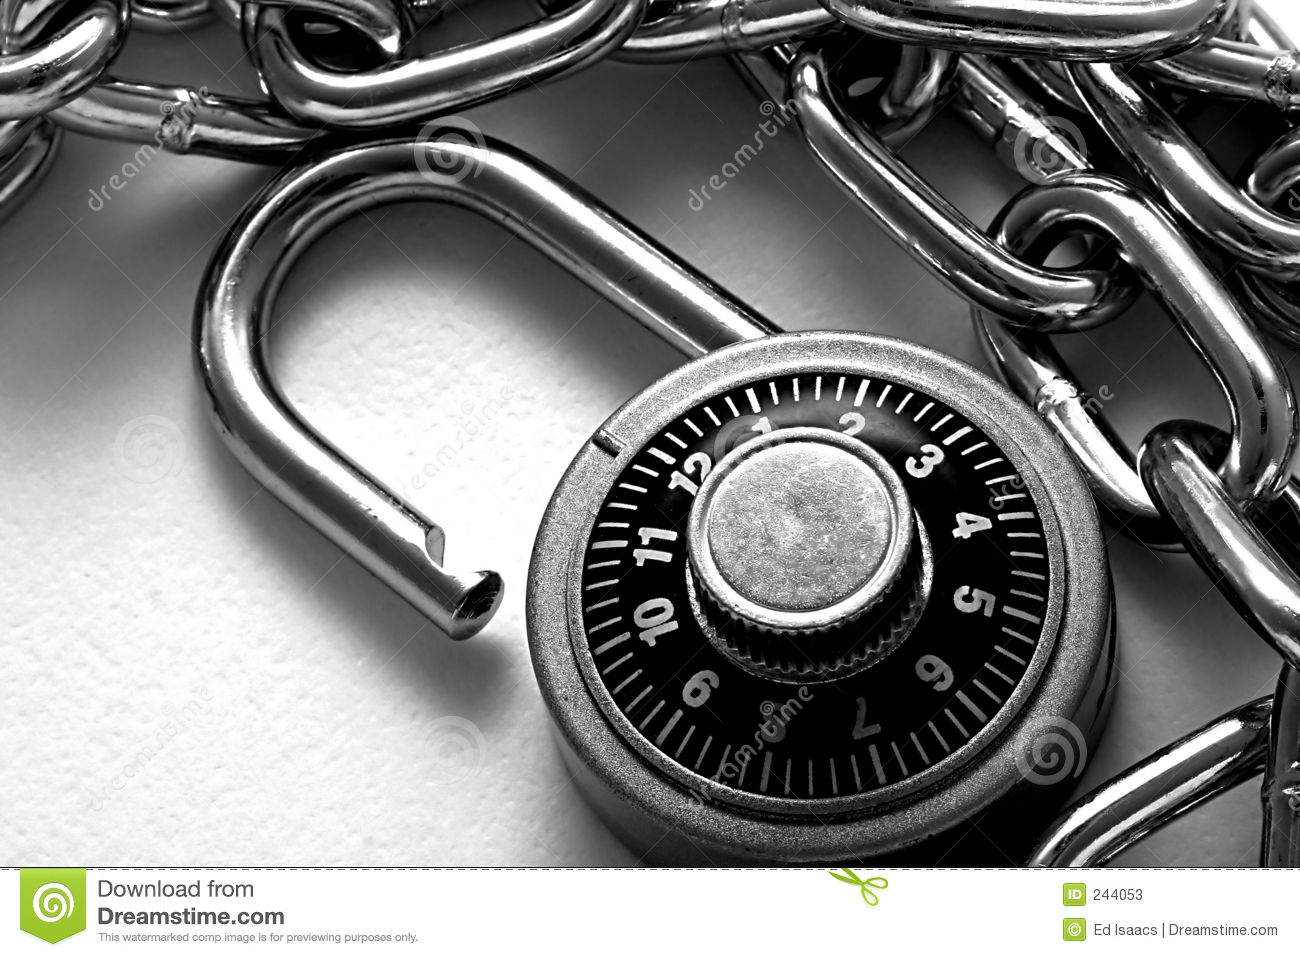 Combination lock stock photos image 244053 - How to open chain lock ...